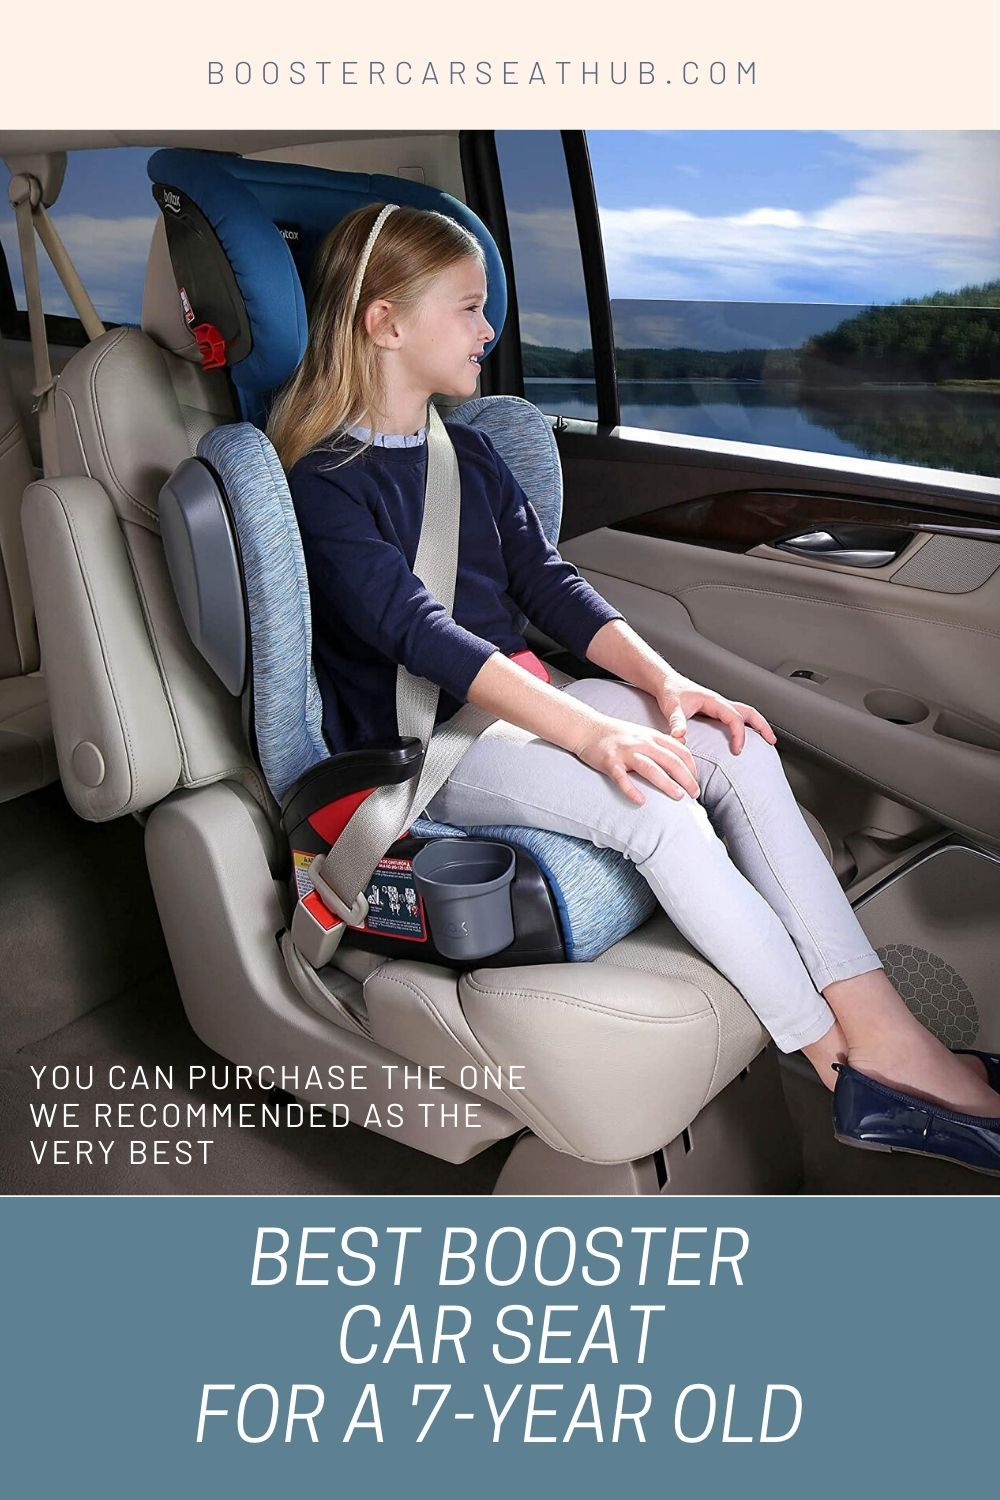 Booster Car Seat For A 7 Year Old, Car Seat For 6 Year Old Boy